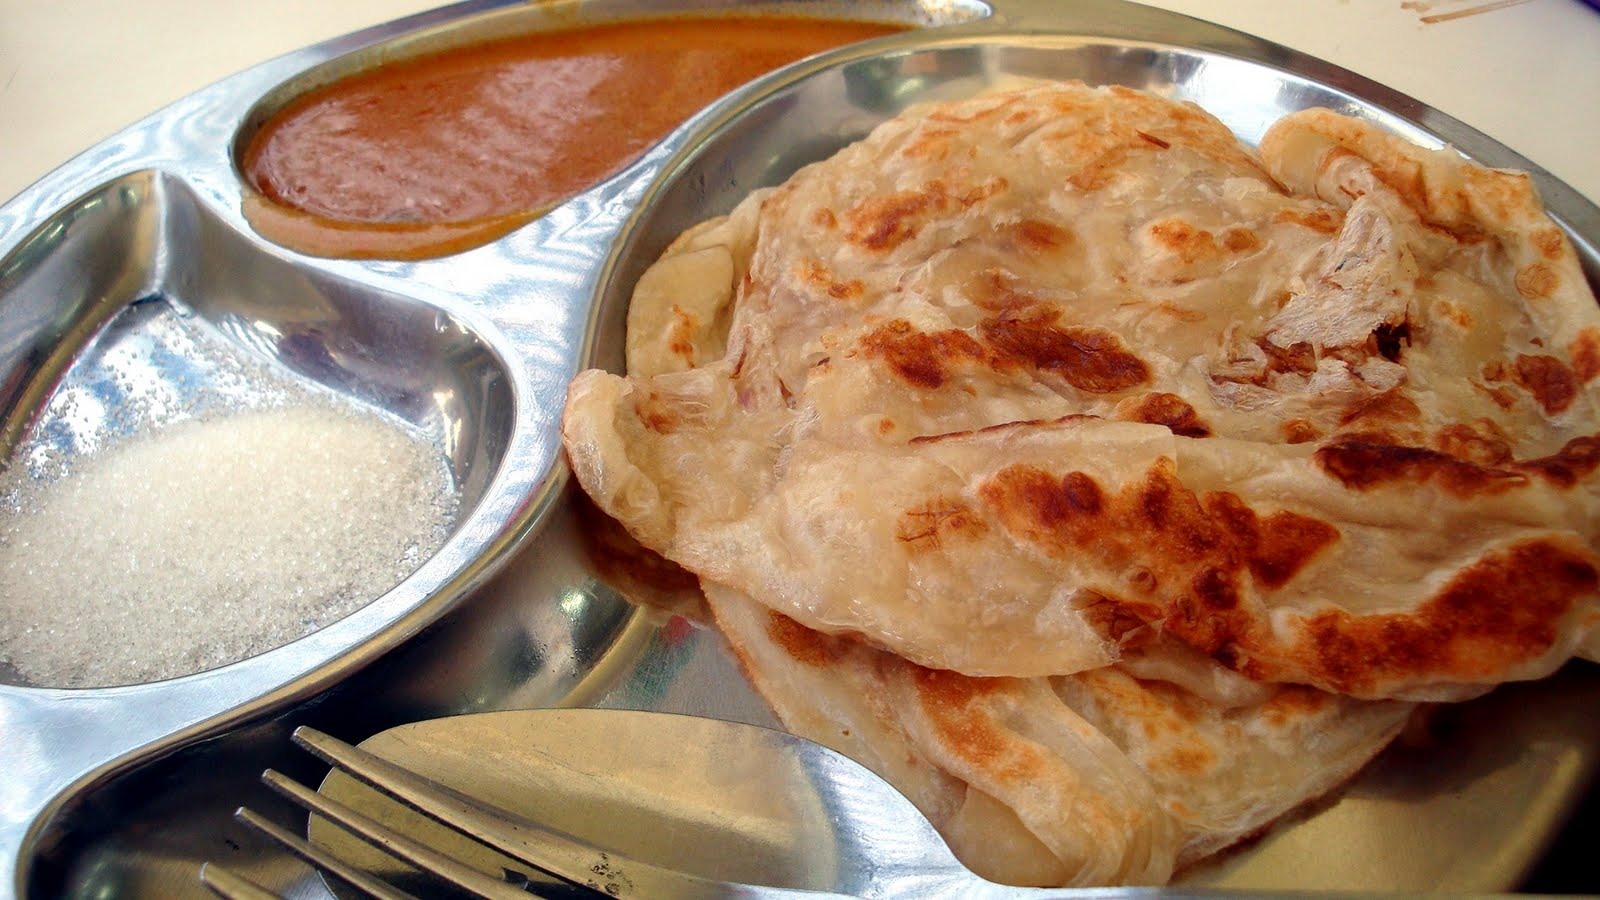 roti prata curry sugar flat bread dough plain egg singapore malaysia street food traditional hawker